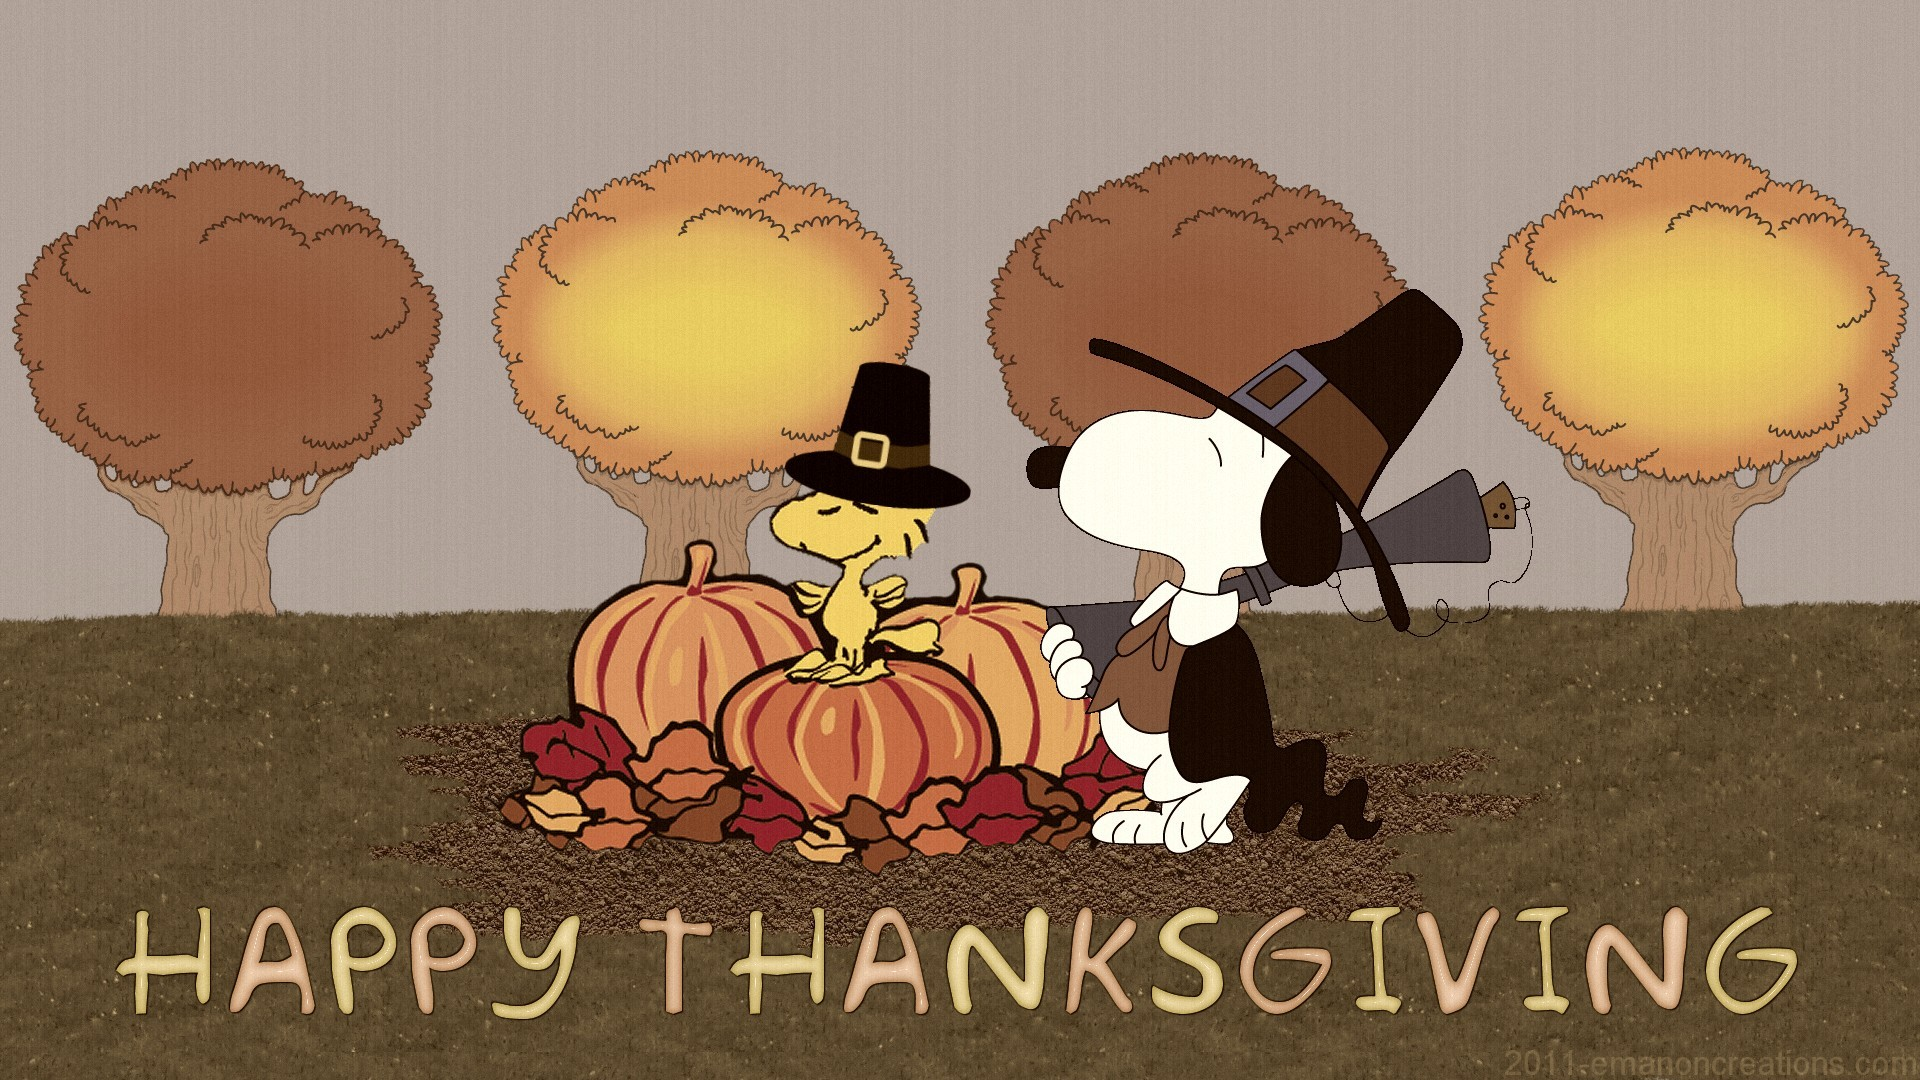 1920x1080  Peanuts Thanksgiving Wallpaper 1366x768 Peanuts thanksgiving  wallpaper